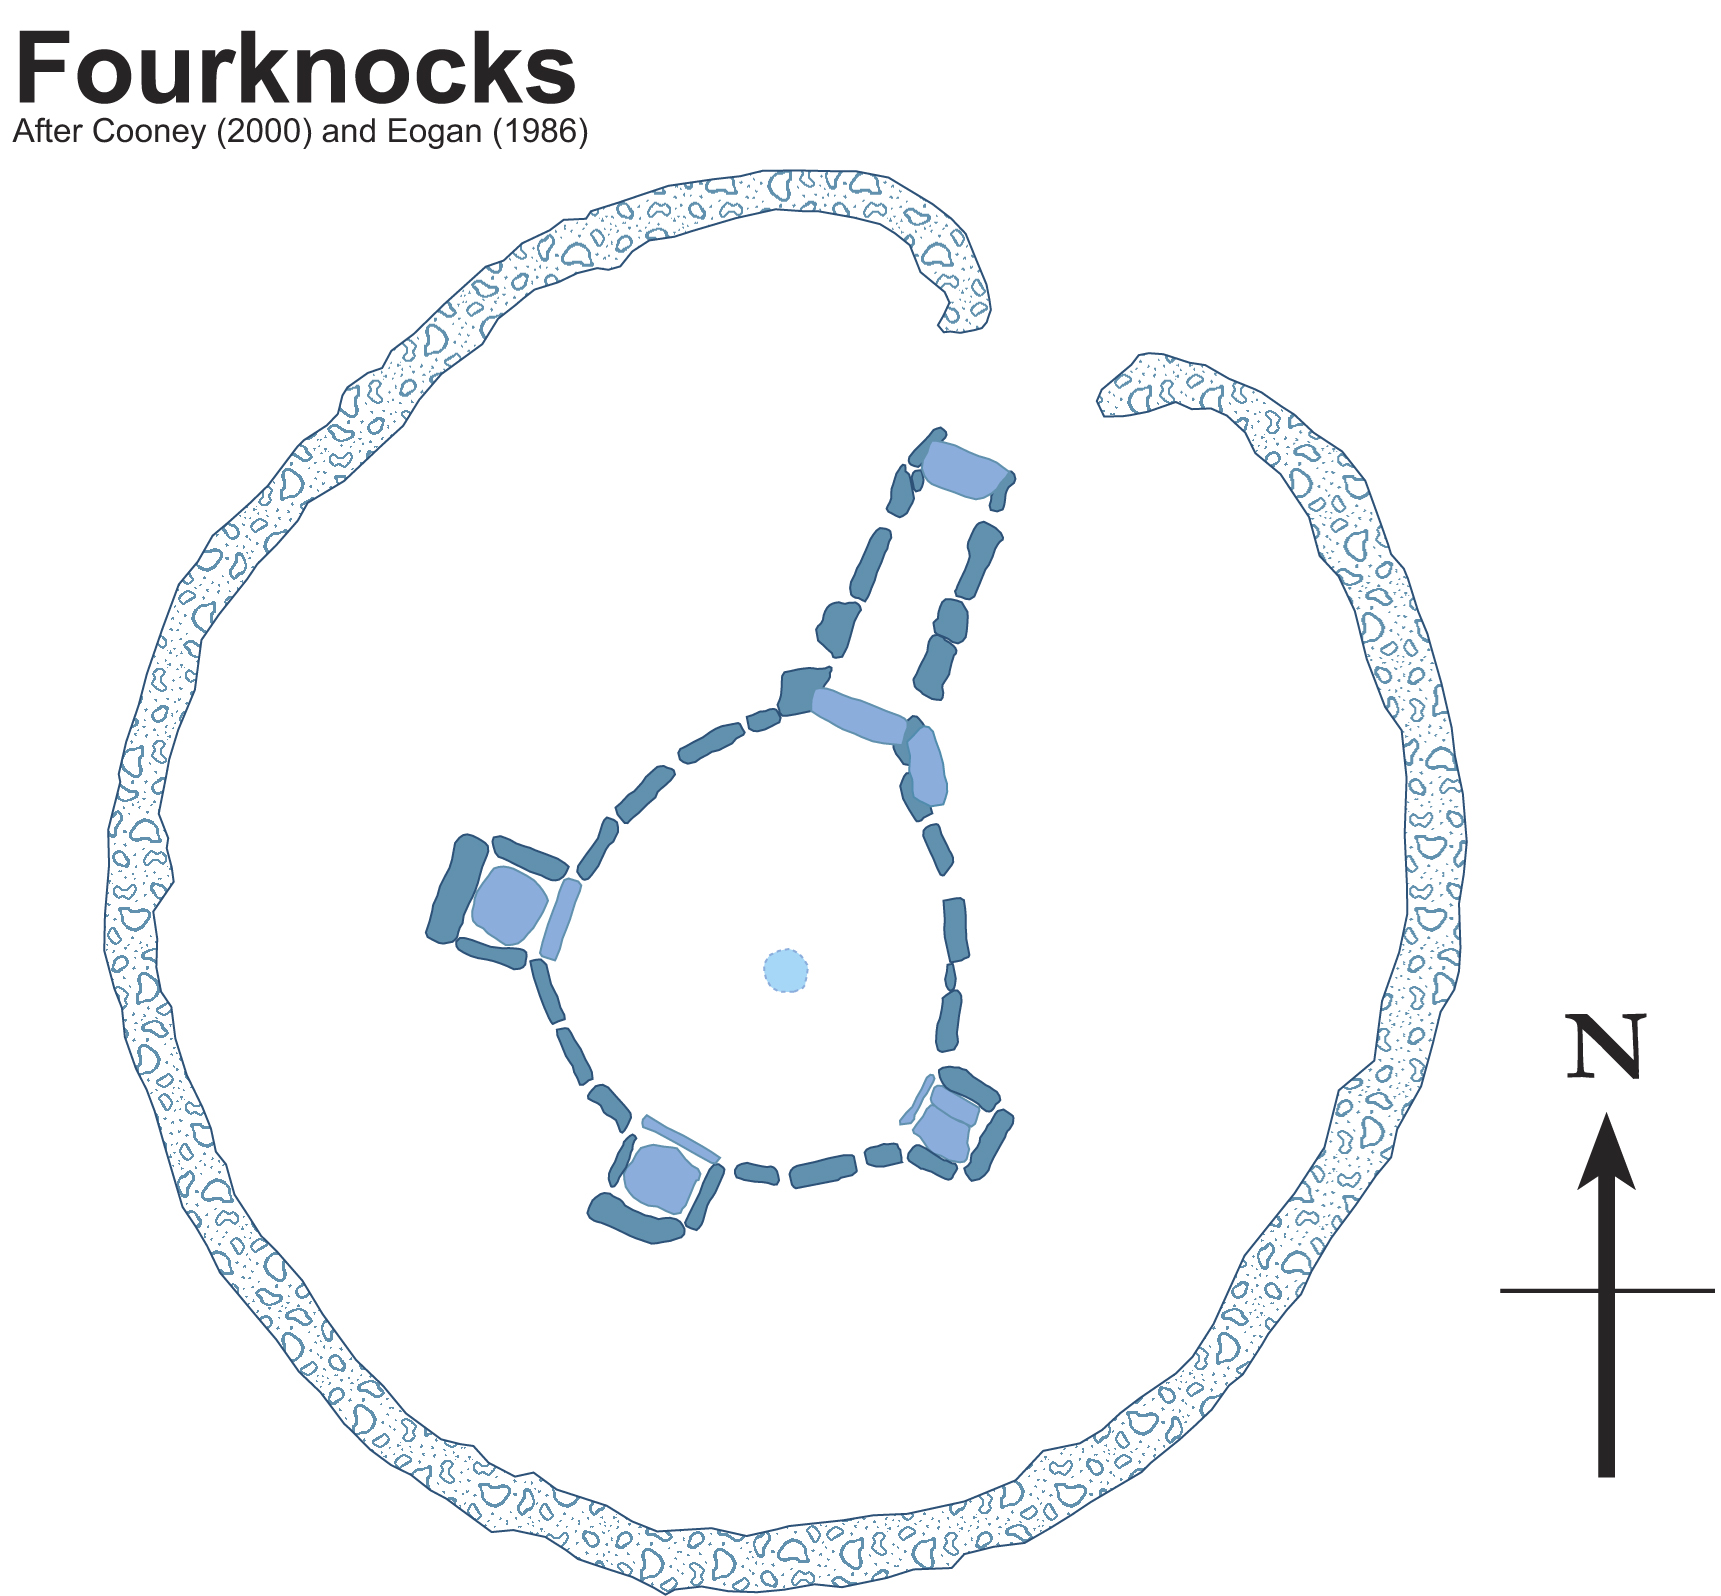 Plan of Fourknocks